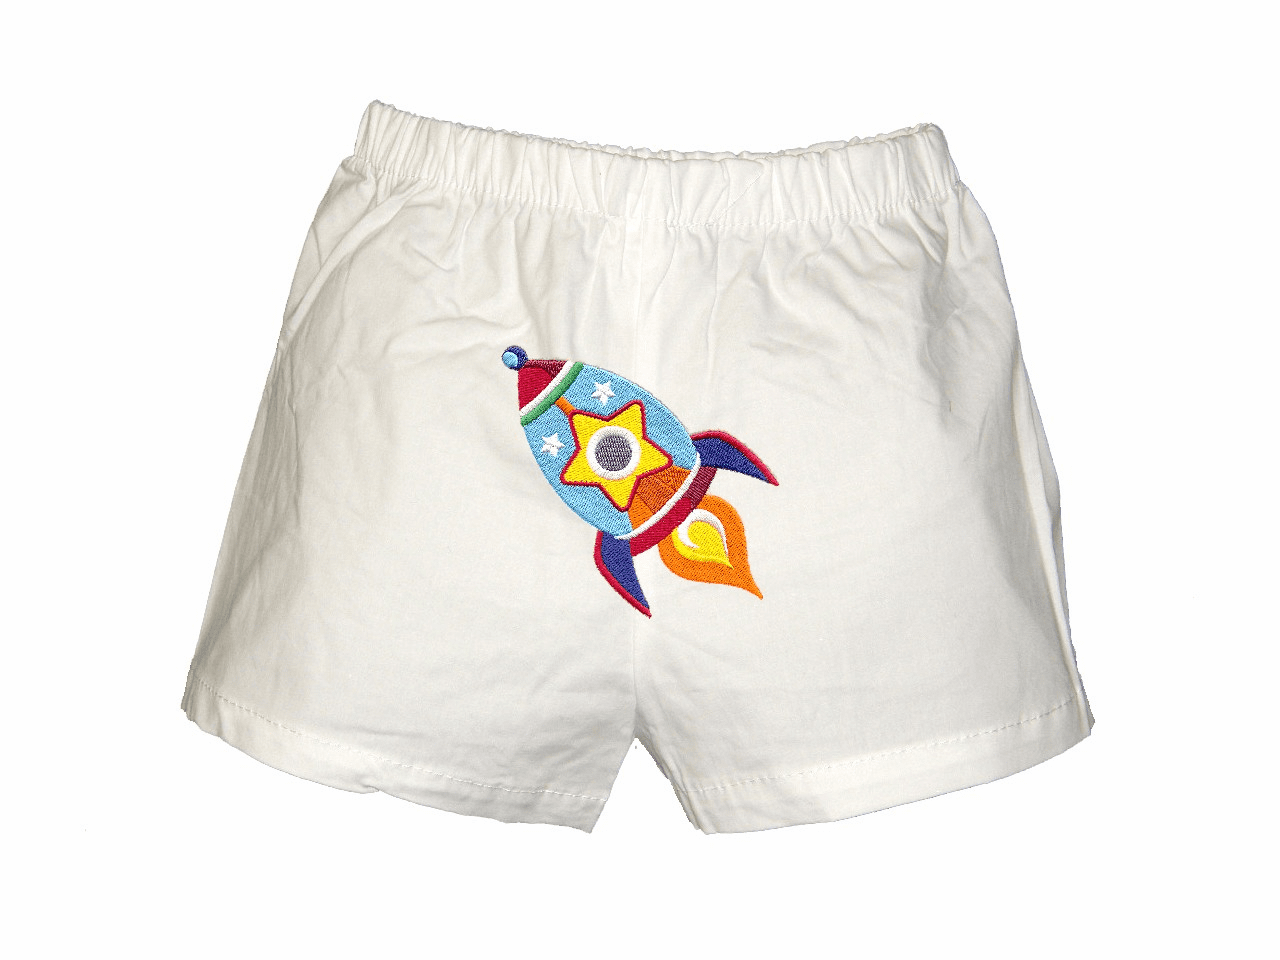 Rocket Personalized Baby Infant Boxers White